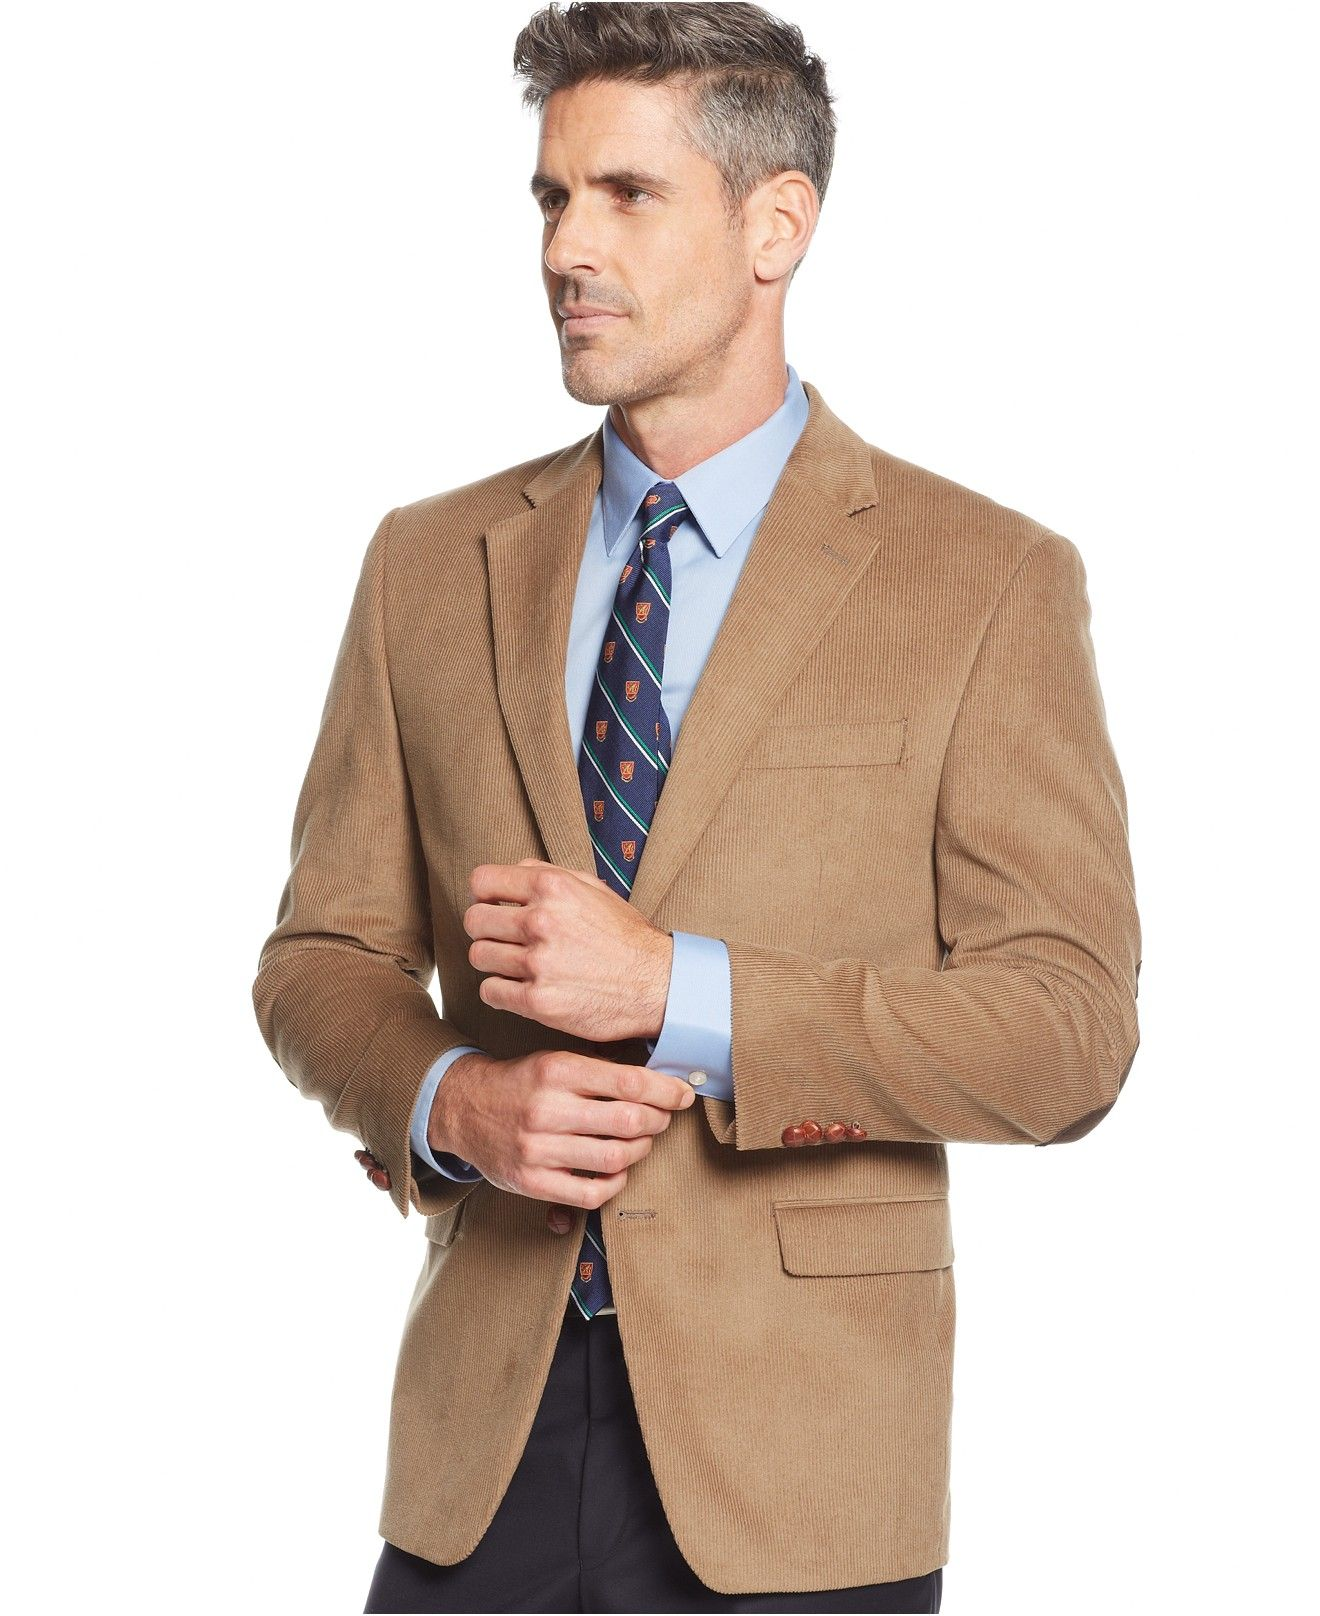 Lauren Ralph Lauren Elbow Patch Corduroy Sport Coat - Blazers & Sport Coats  - Men -